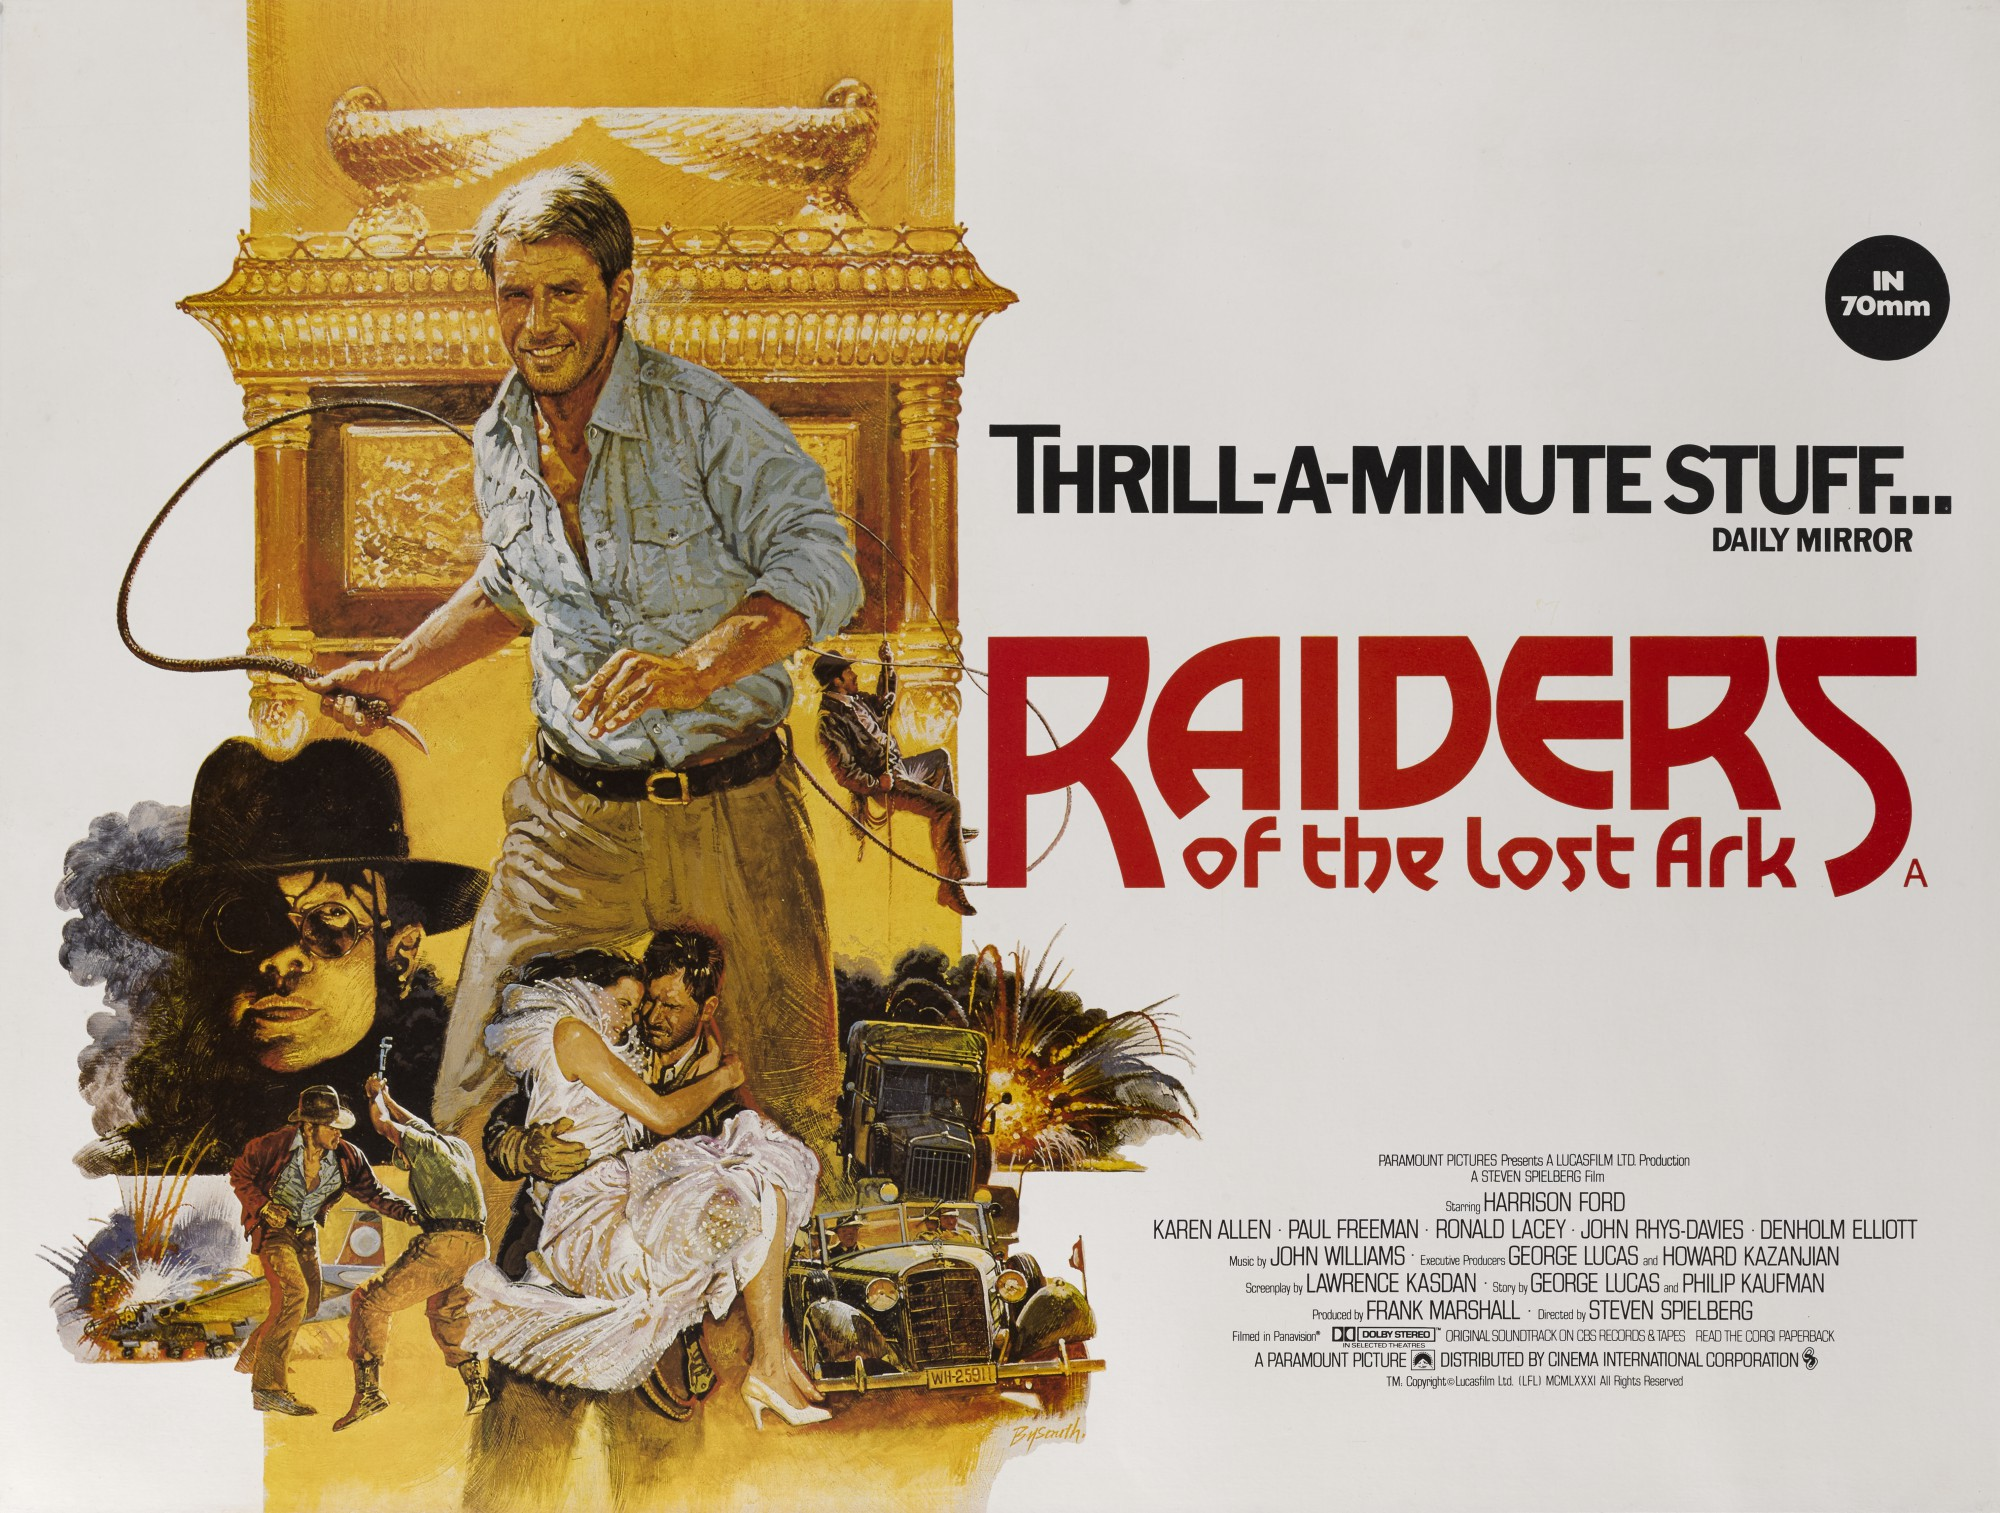 RAIDERS OF THE LOST ARK (1981) POSTER, BRITISH